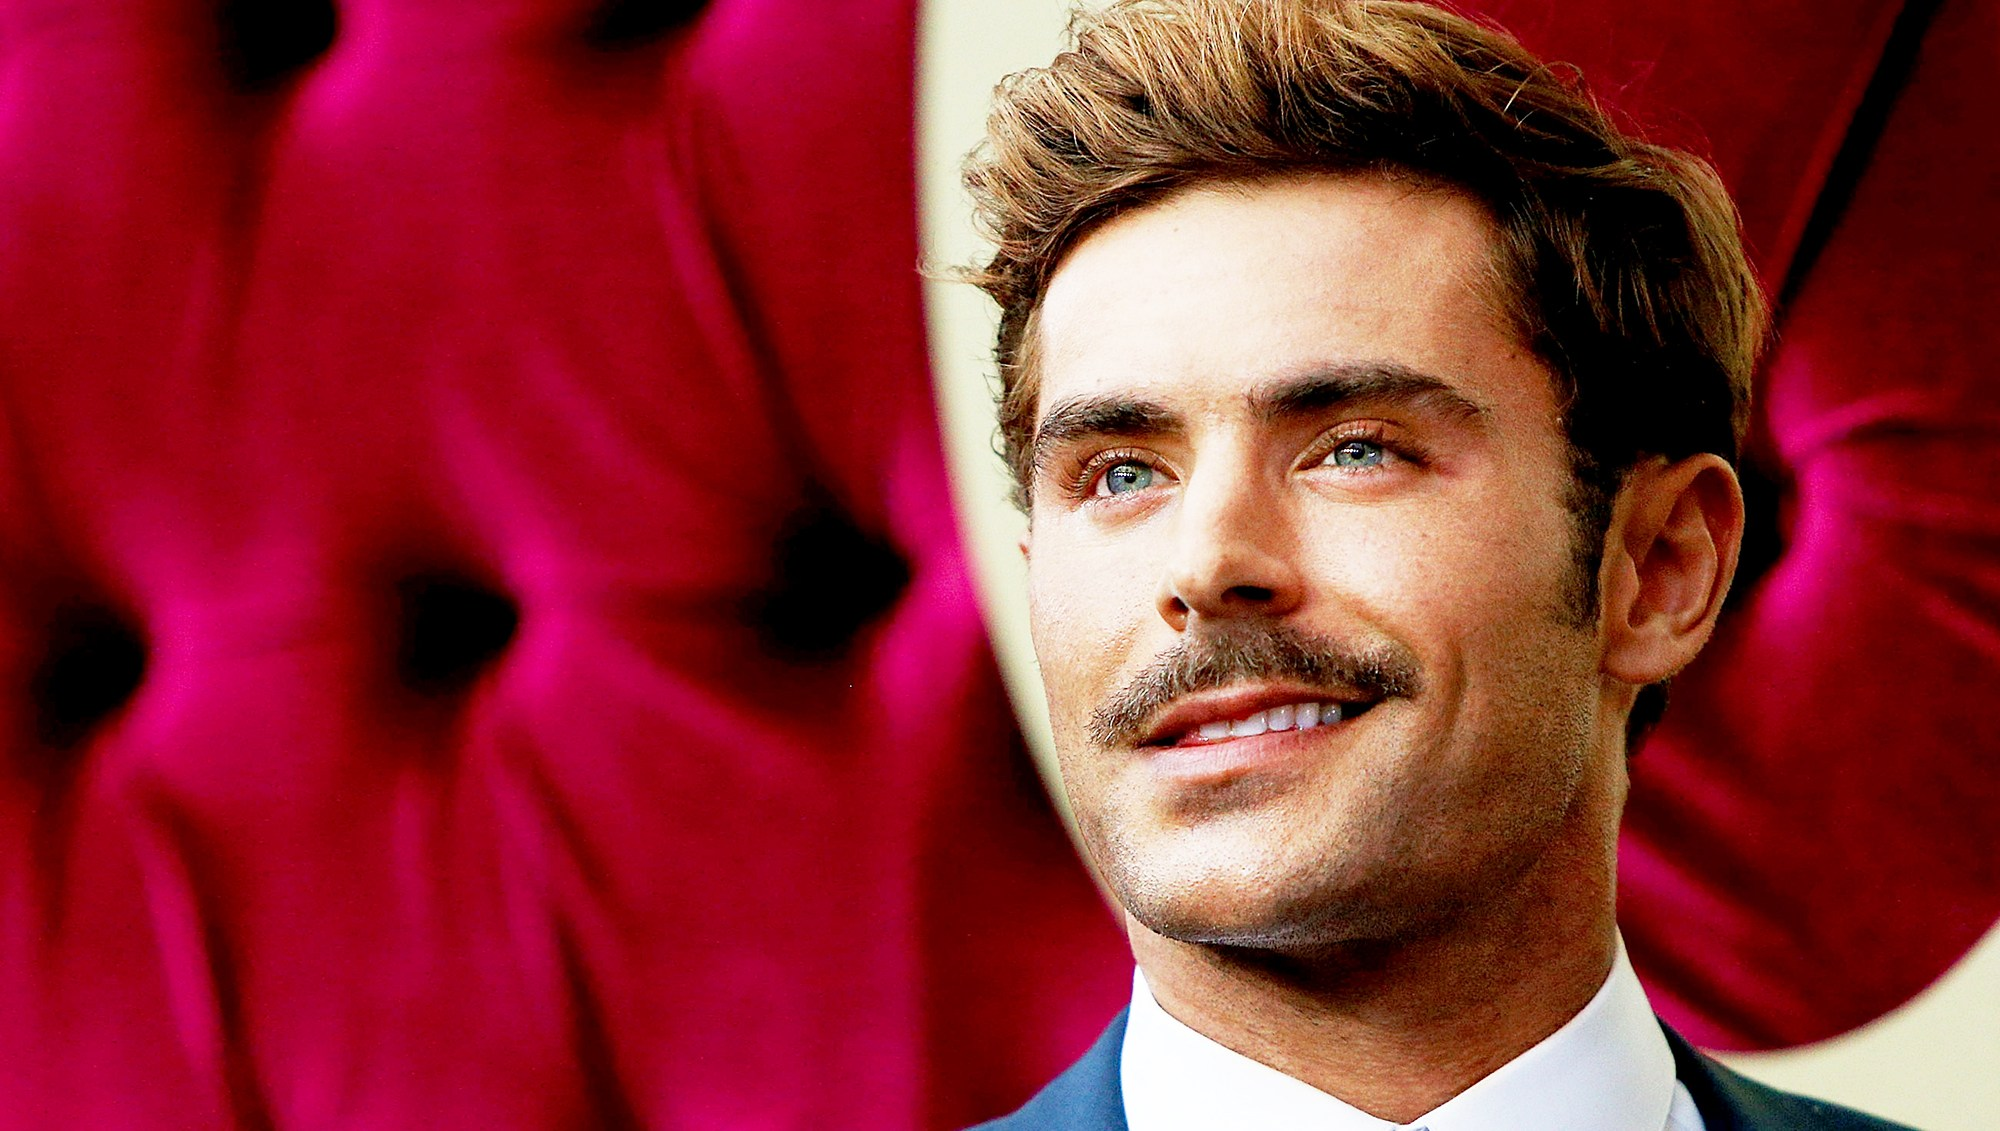 Zac Efron attends the Australian 2017 premiere of The Greatest Showman at The Star in Sydney, Australia.